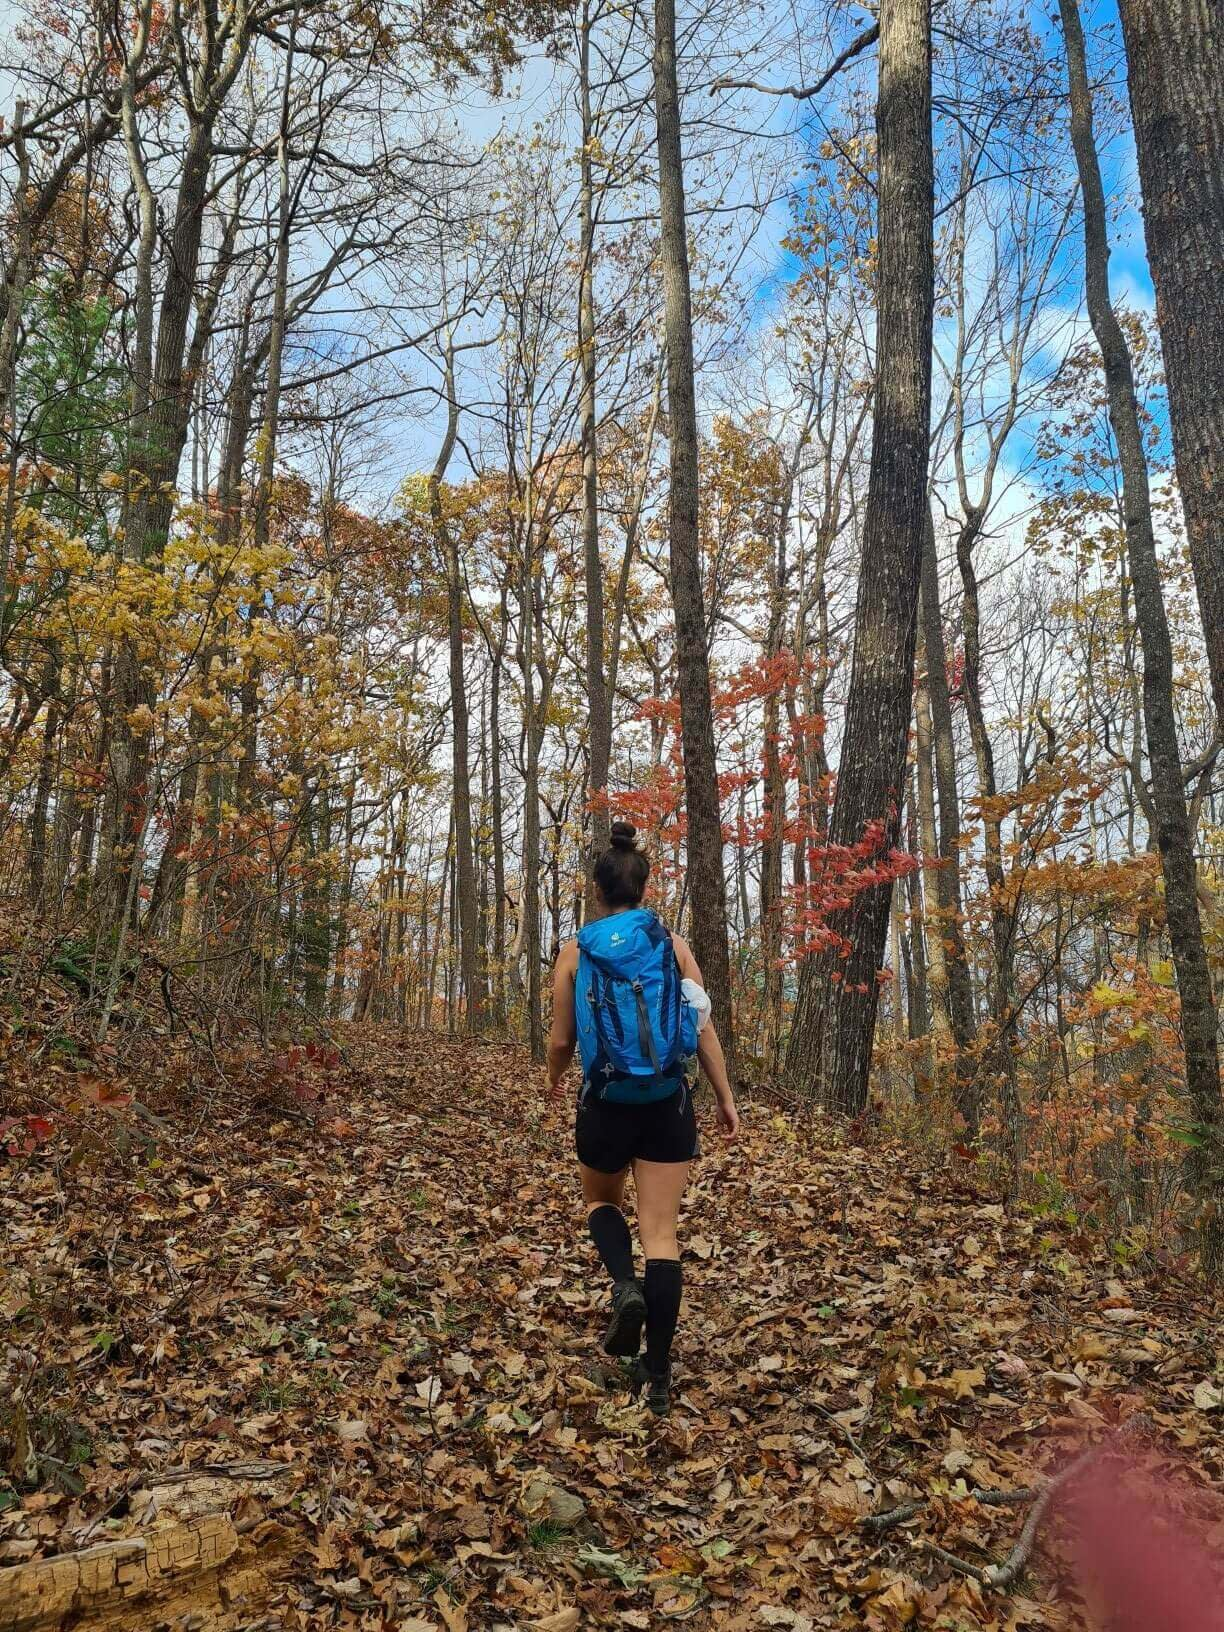 walking without hiking blisters at unicoi gap in the fall